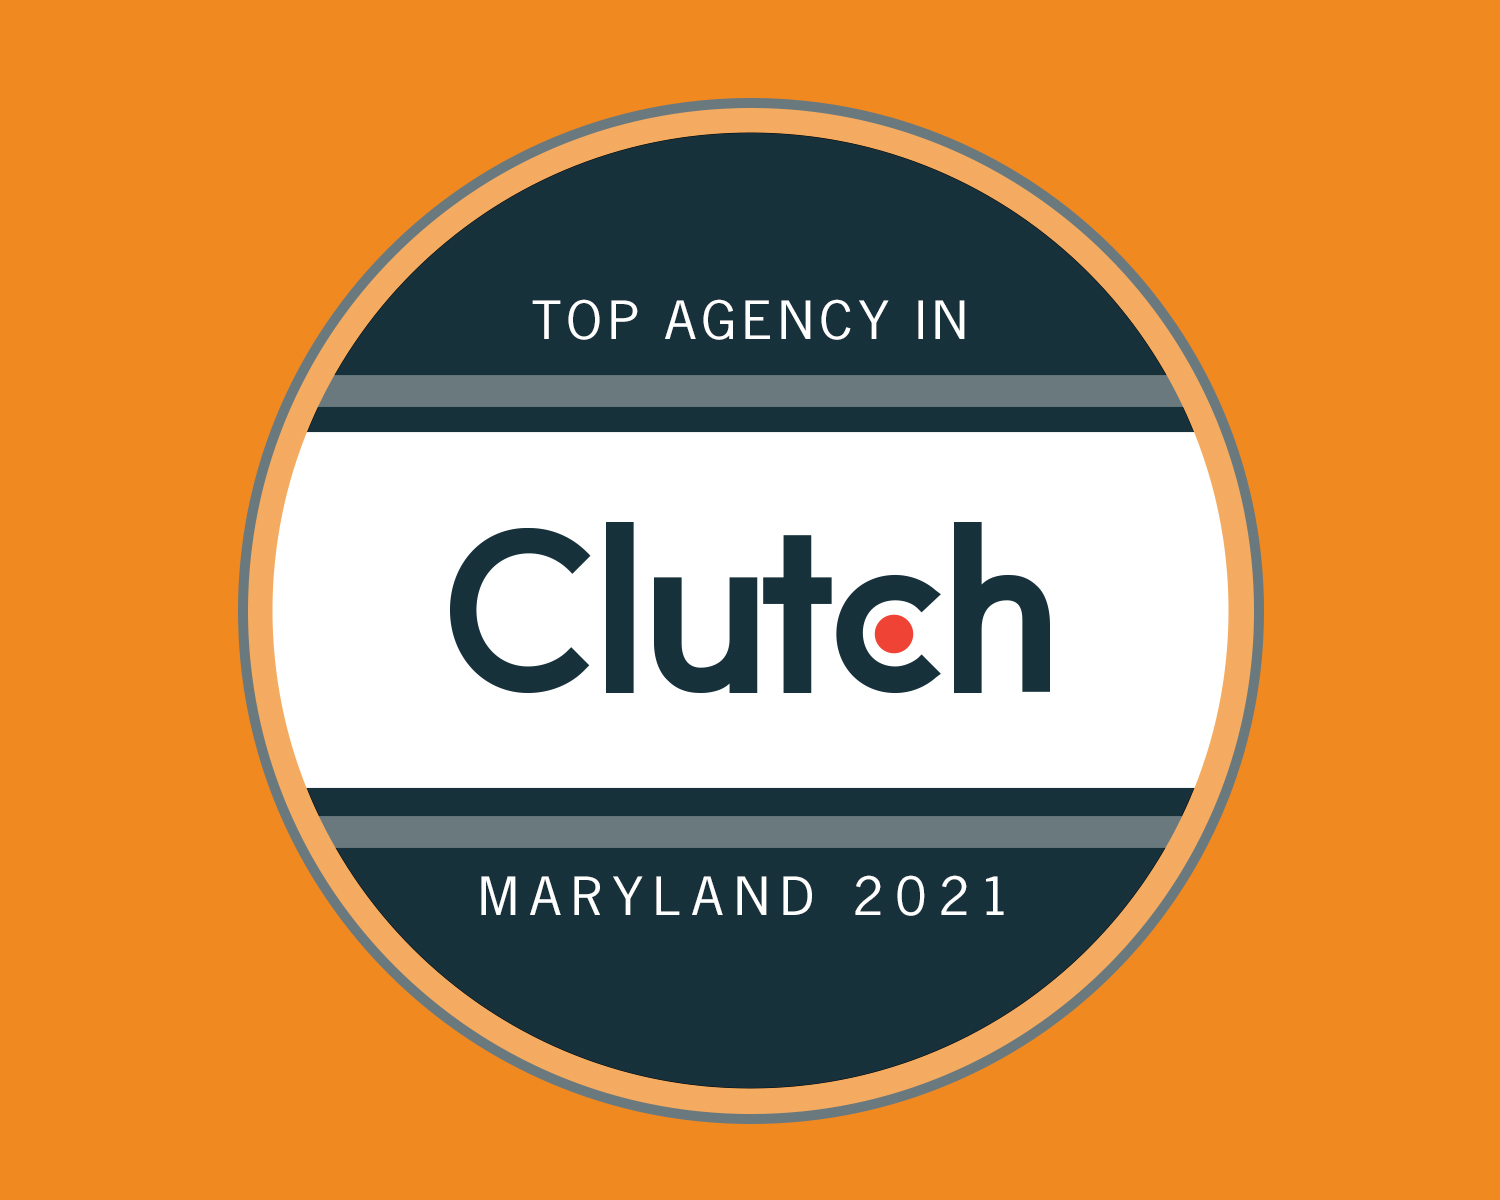 Top Agency in Maryland 2021